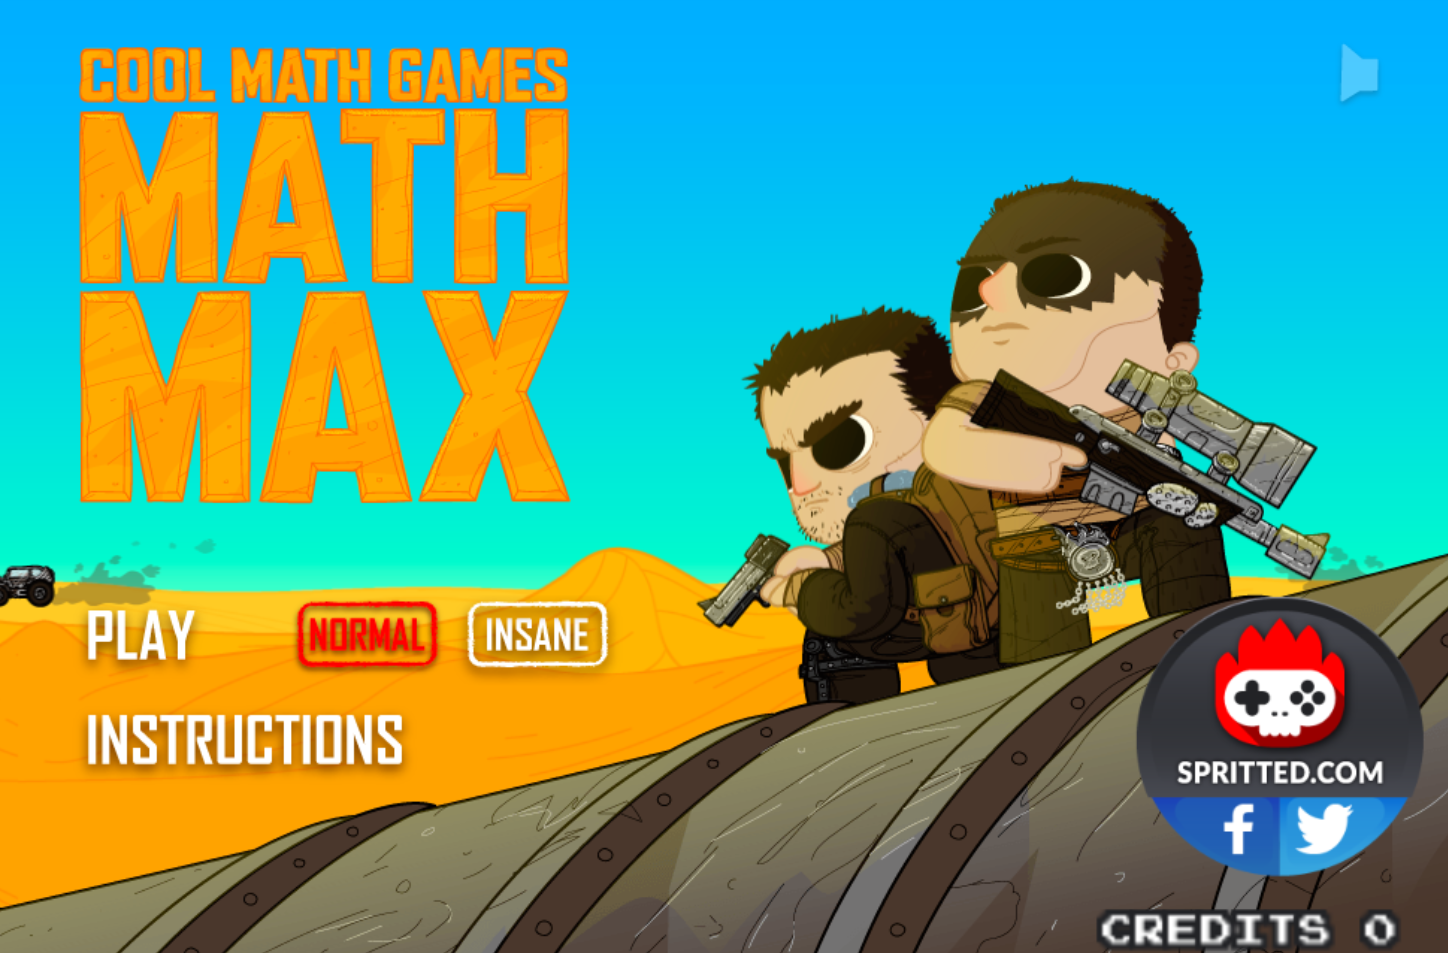 cxool math games